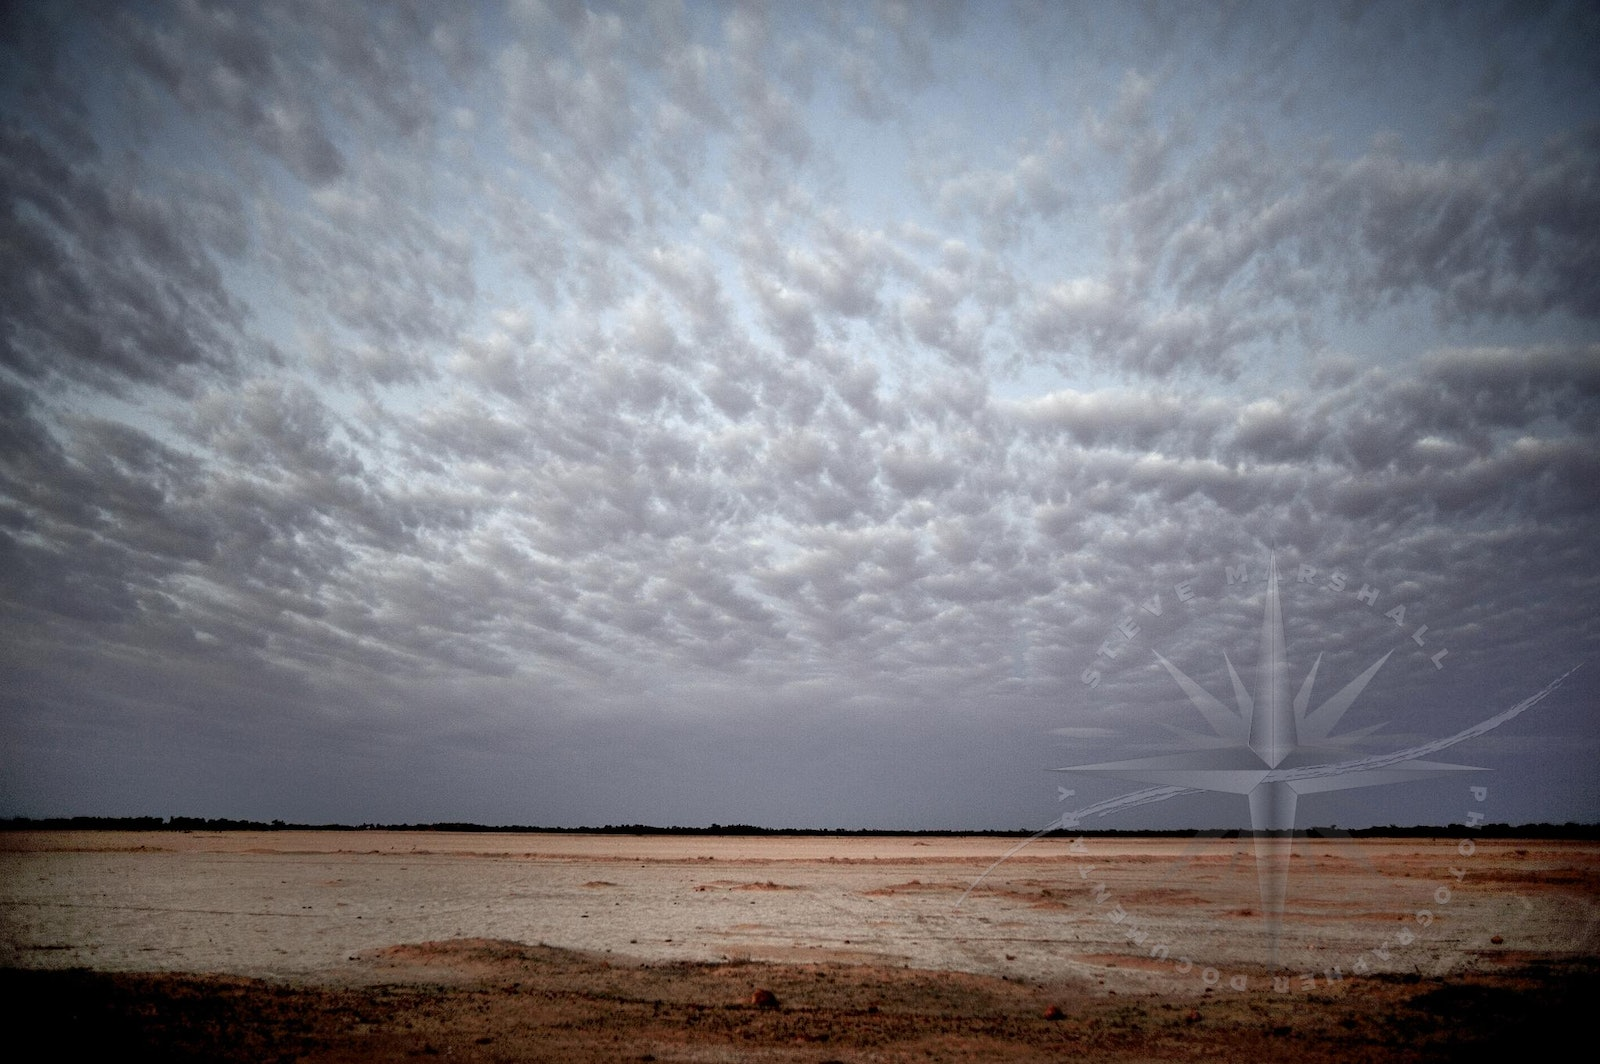 Cloud over salt flat - Strato cloud over salt flat near Quilpie QLD. Outback Australia Documentary © Steve Marshall